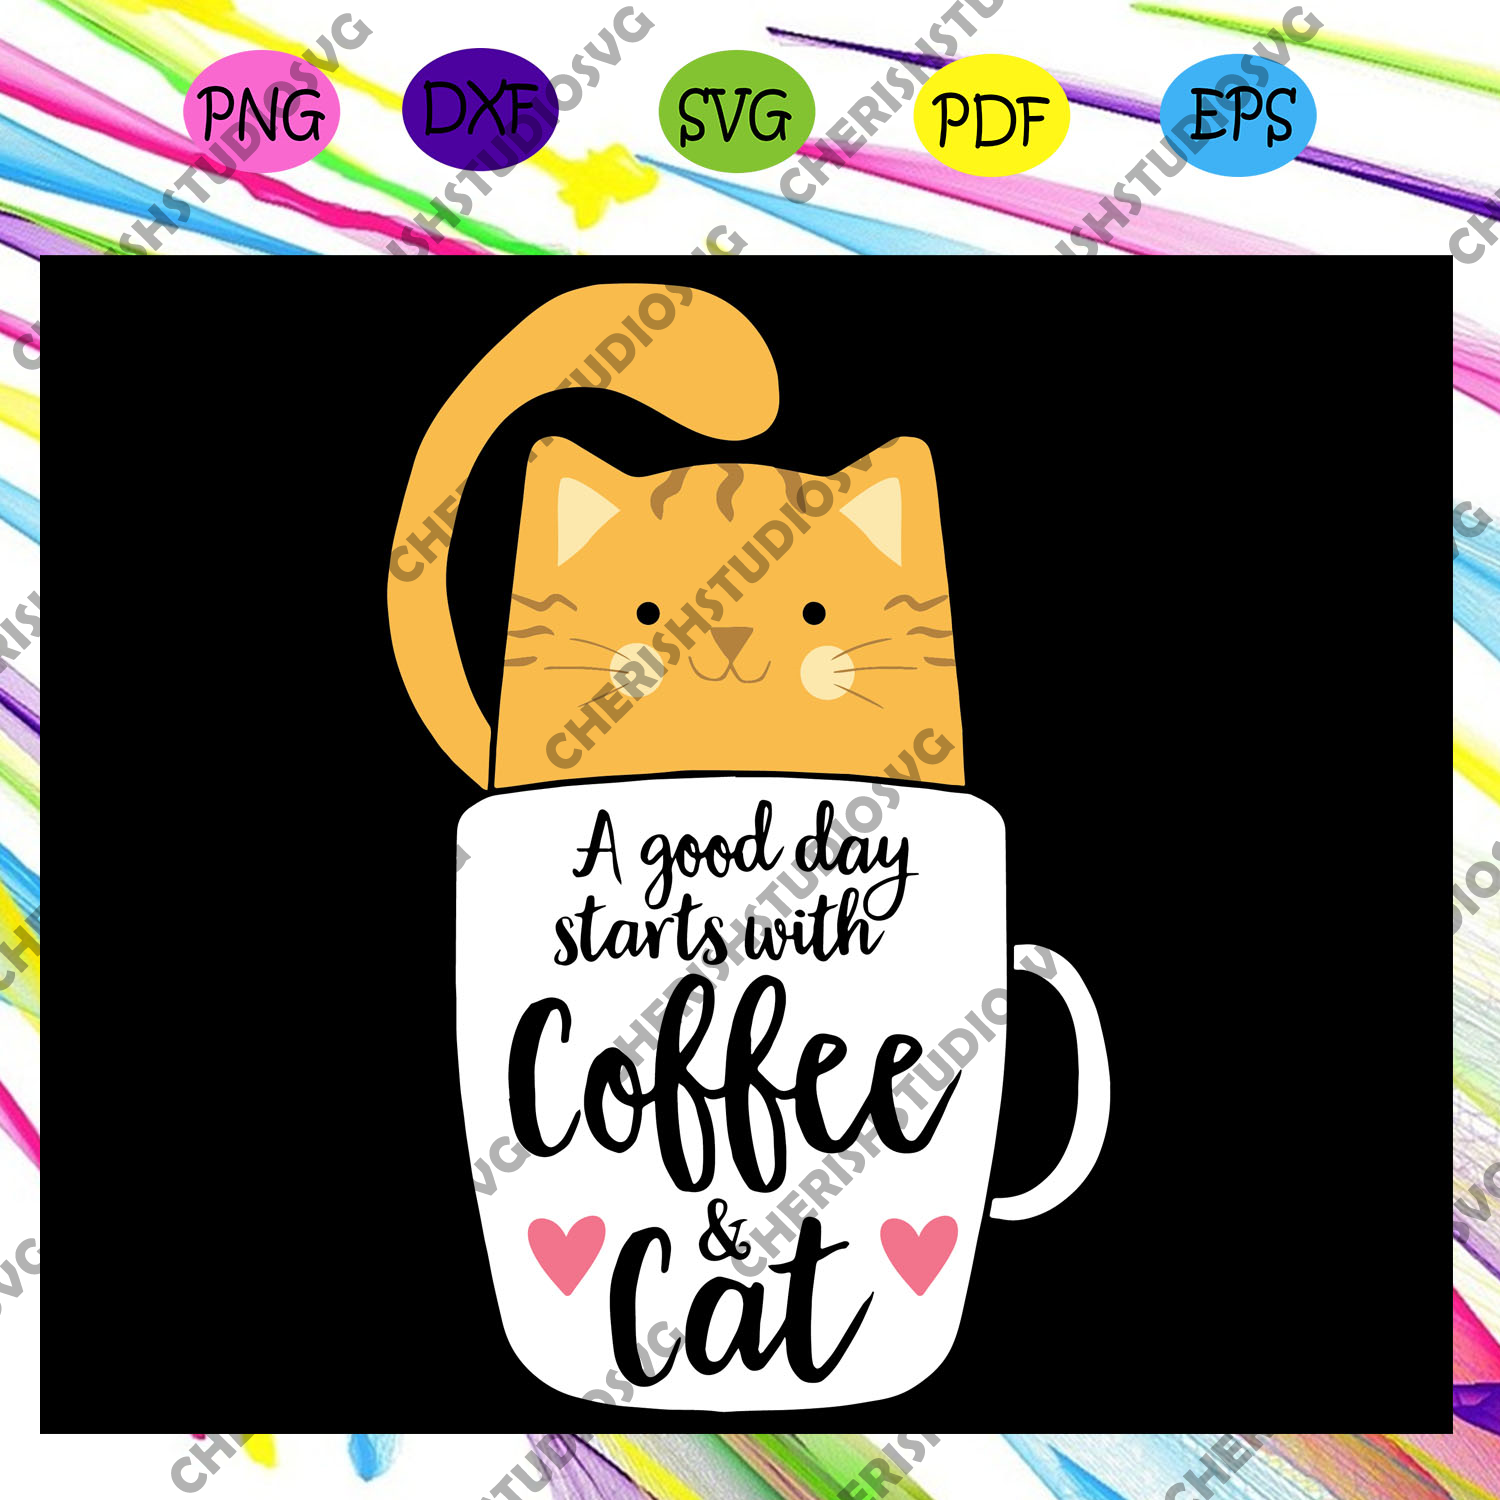 A Good Day Starts With Coffee And Cat Svg, Cat Svg, Cat Lover,cat lover svg, cat lover gift, cat lover party, cat lover, cat collar, black cat, funny cat gift, For Silhouette, Files For Cricut, SVG, DXF, EPS, PNG Instant Download